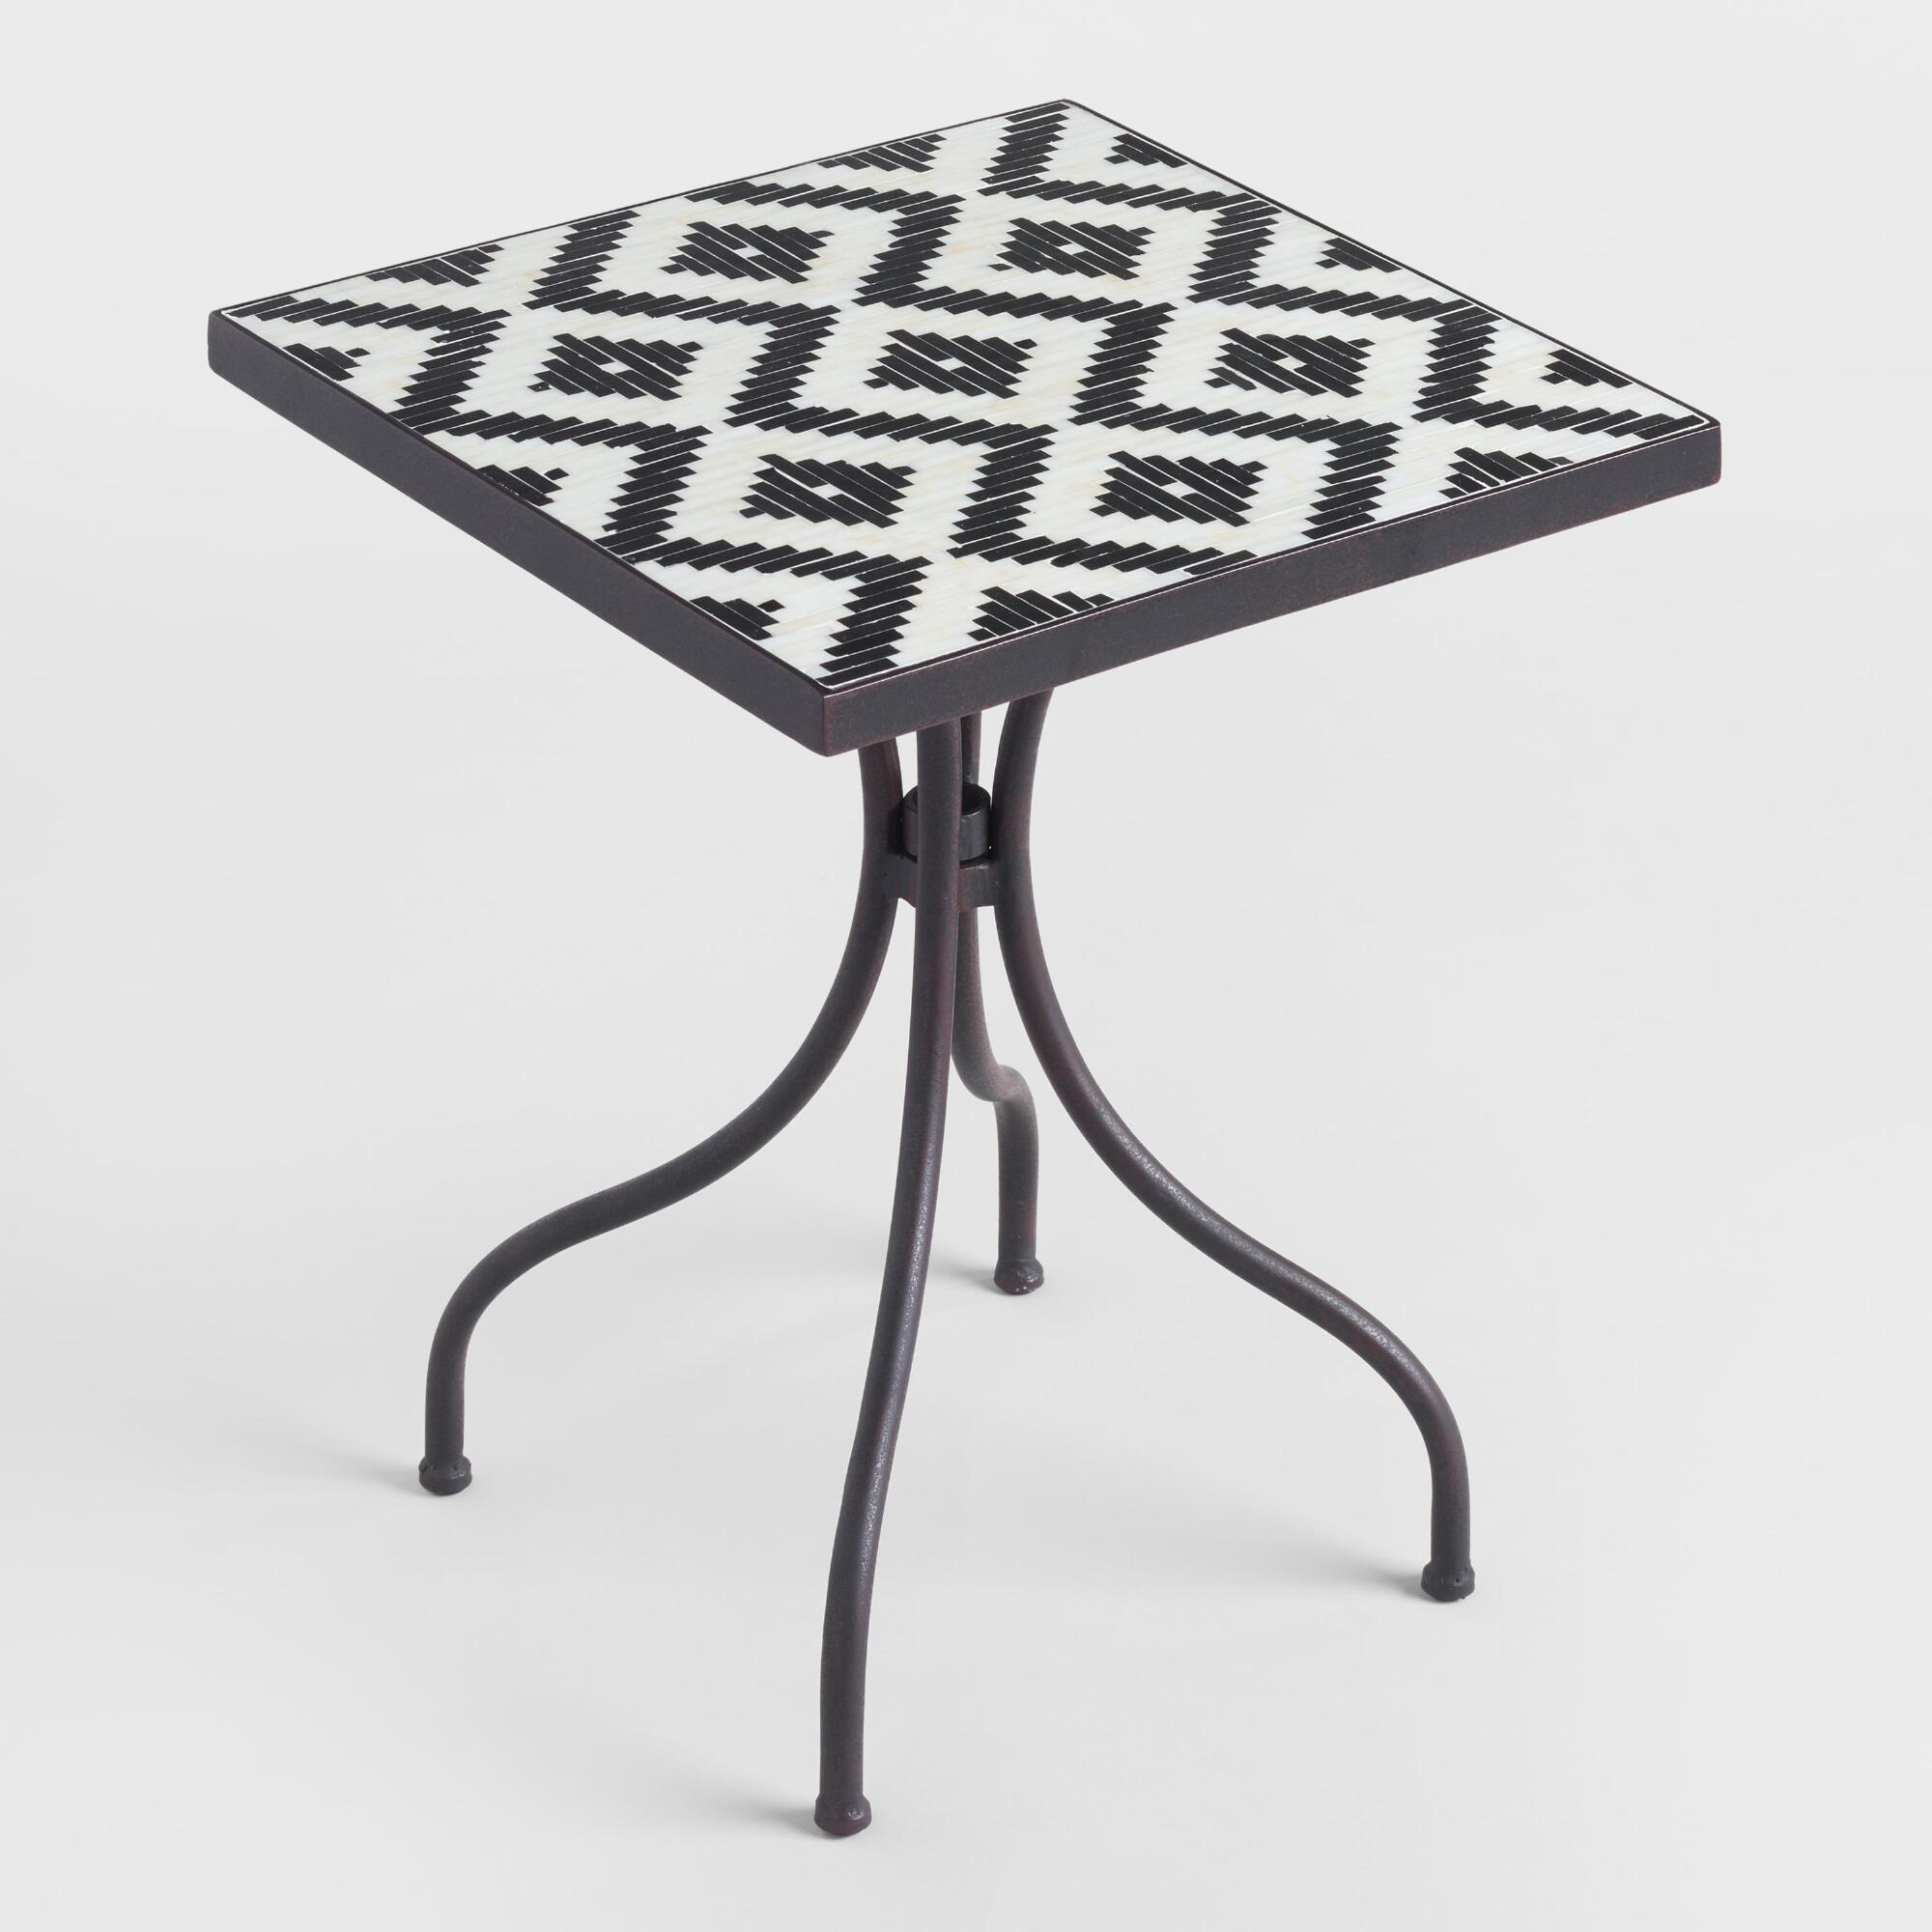 square black and white cadiz outdoor accent table world market iipsrv fcgi metal target live edge coffee accessories bar height nesting console tables serving with storage glass